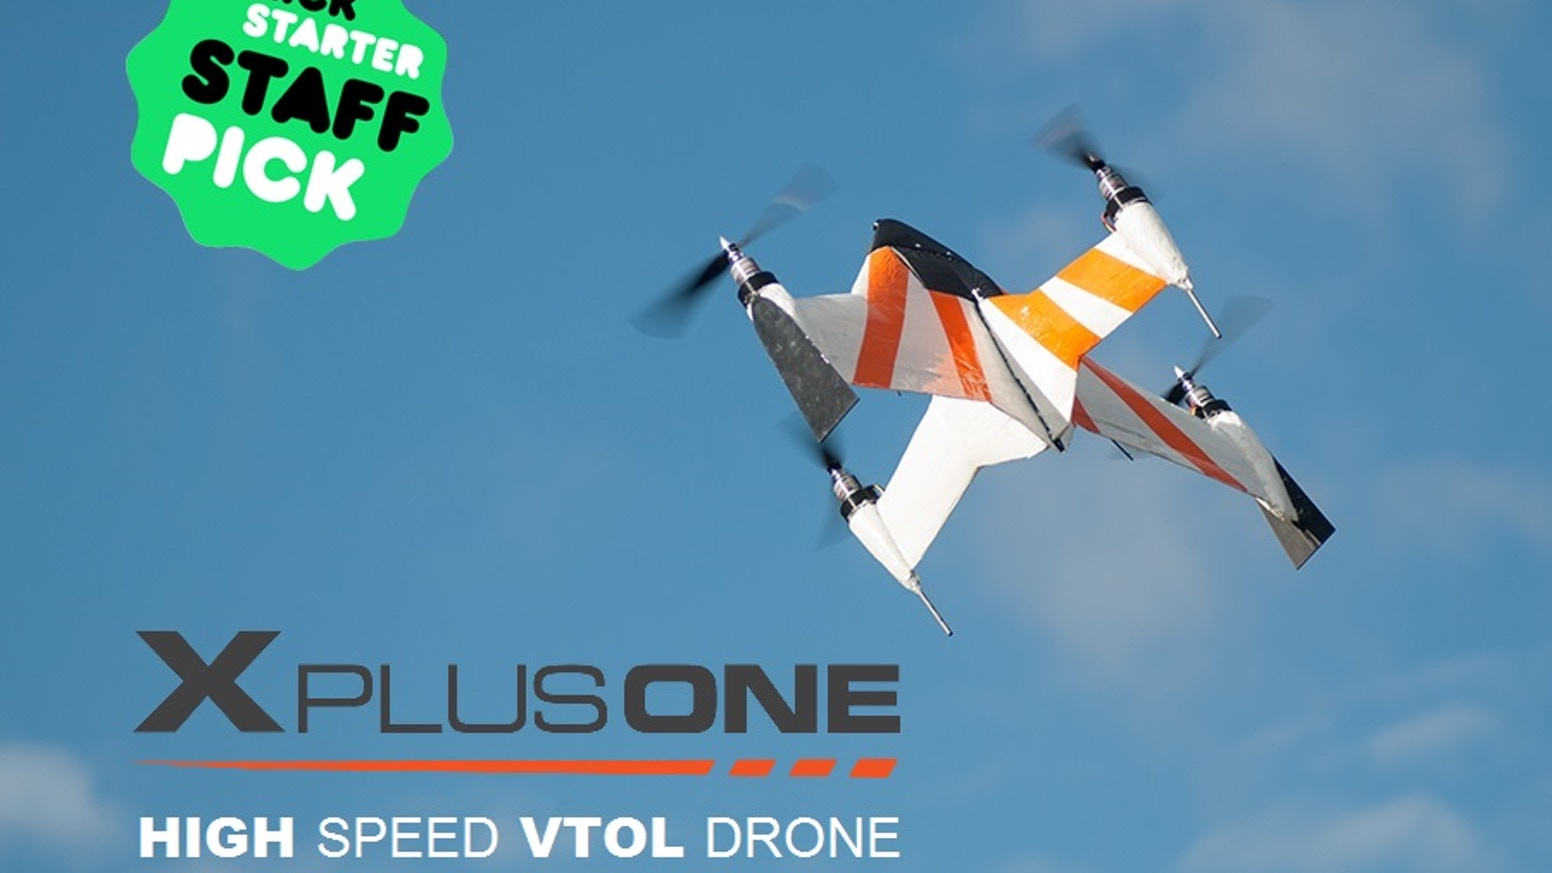 The X PlusOne is a revolutionary hybrid drone that combines the ability for both stabilized hover and remarkably fast forward flight.